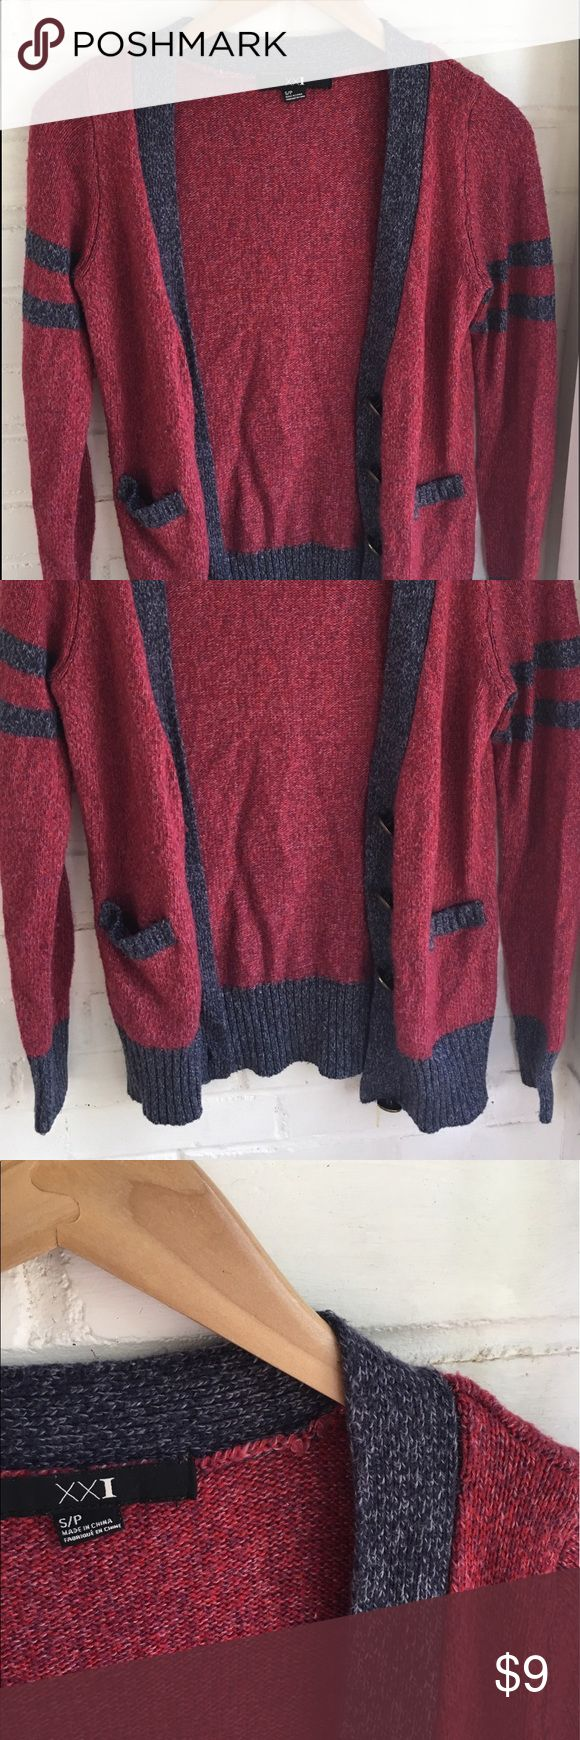 Red Cardigan Sweater Stylish red and blue cardigan sweater with gold intricate buttons. Product from Forever 21 and is in good condition! Forever 21 Sweaters Cardigans